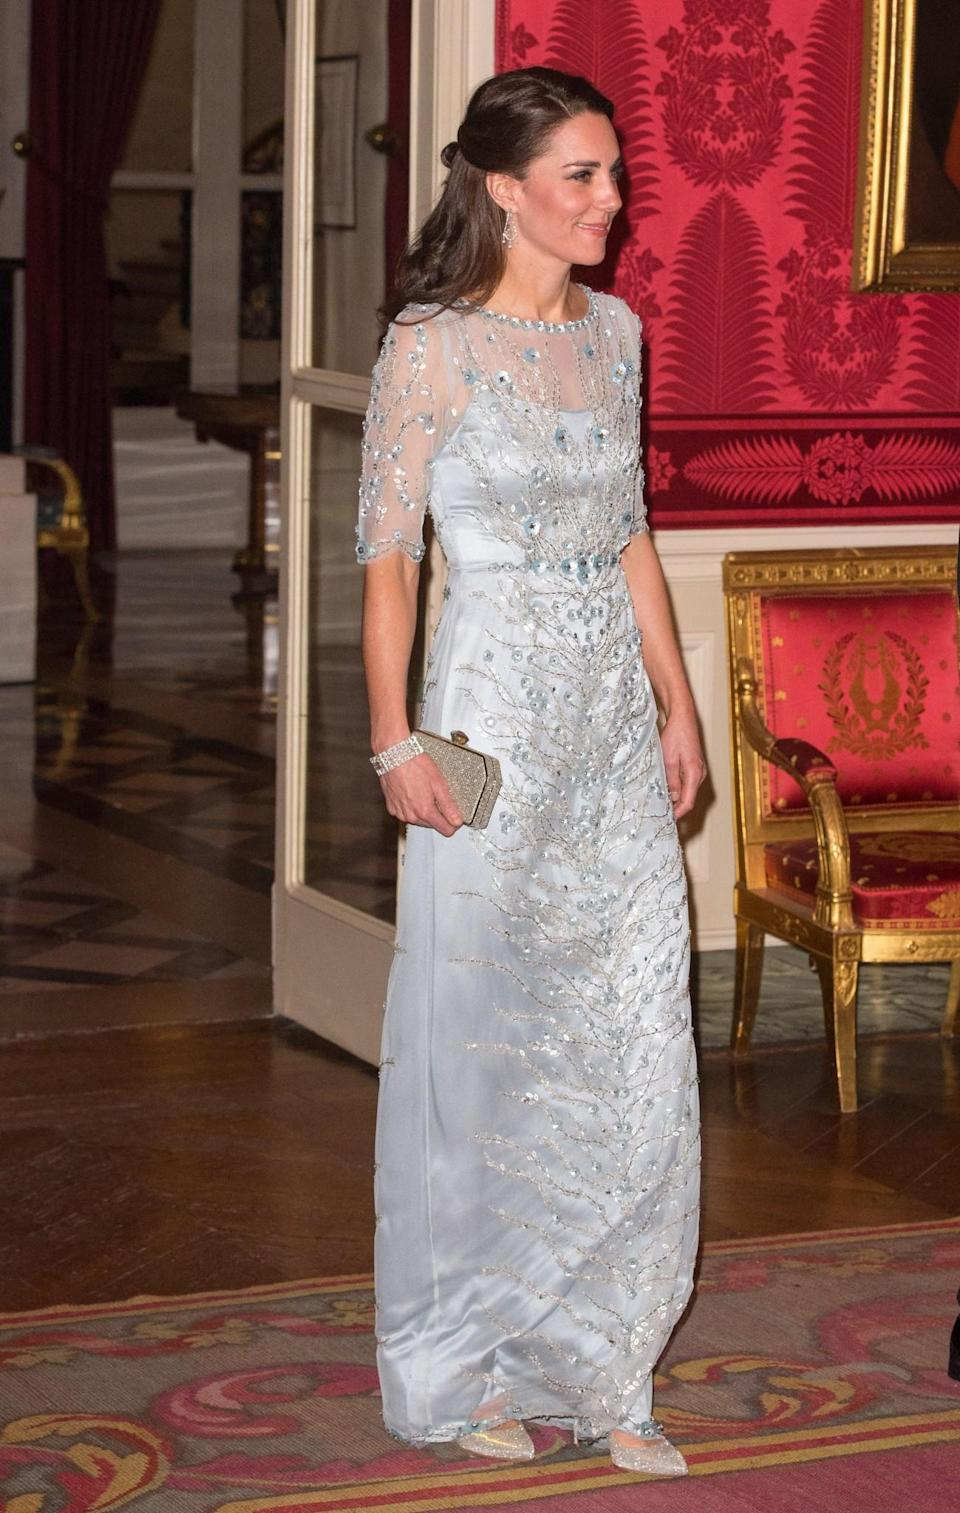 <p>Black tie dinners are always Kate's time to shine. For such an occasion in Paris, the Duchess was spotted in a gorgeous bespoke Jenny Packham gown. The silvery design featured sheer sleeves and beaded floral embellishing. A glittering clutch (also by Jenny Packham) was carried with sparkly Oscar de la Renta pumps topping off the princess-worthy ensemble.<br><i>[Photo: PA</i> </p>